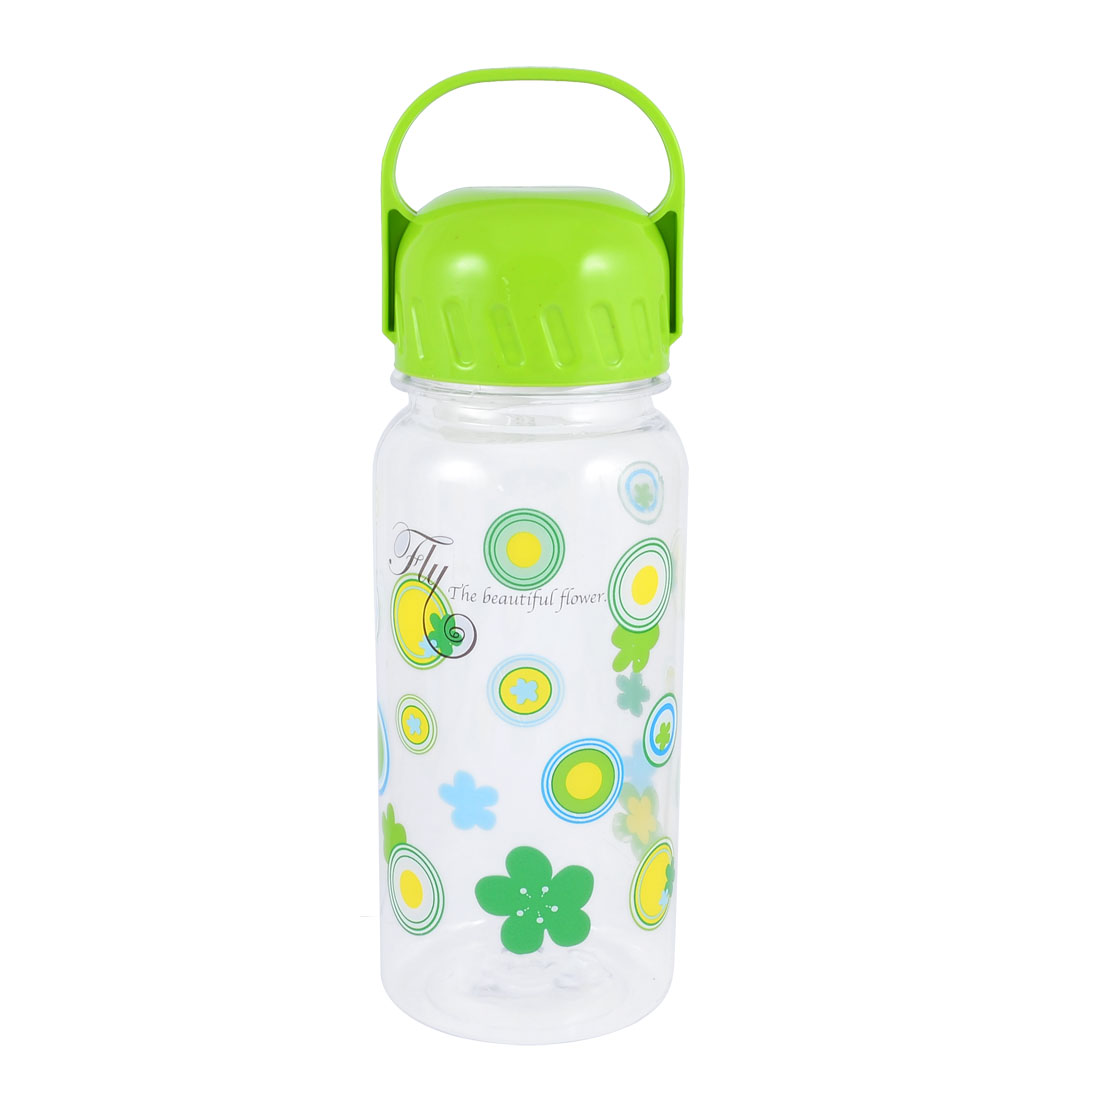 Handhold 630ml Capacity Green Clear Outdoor Spor Plastic Water Holder Bottle